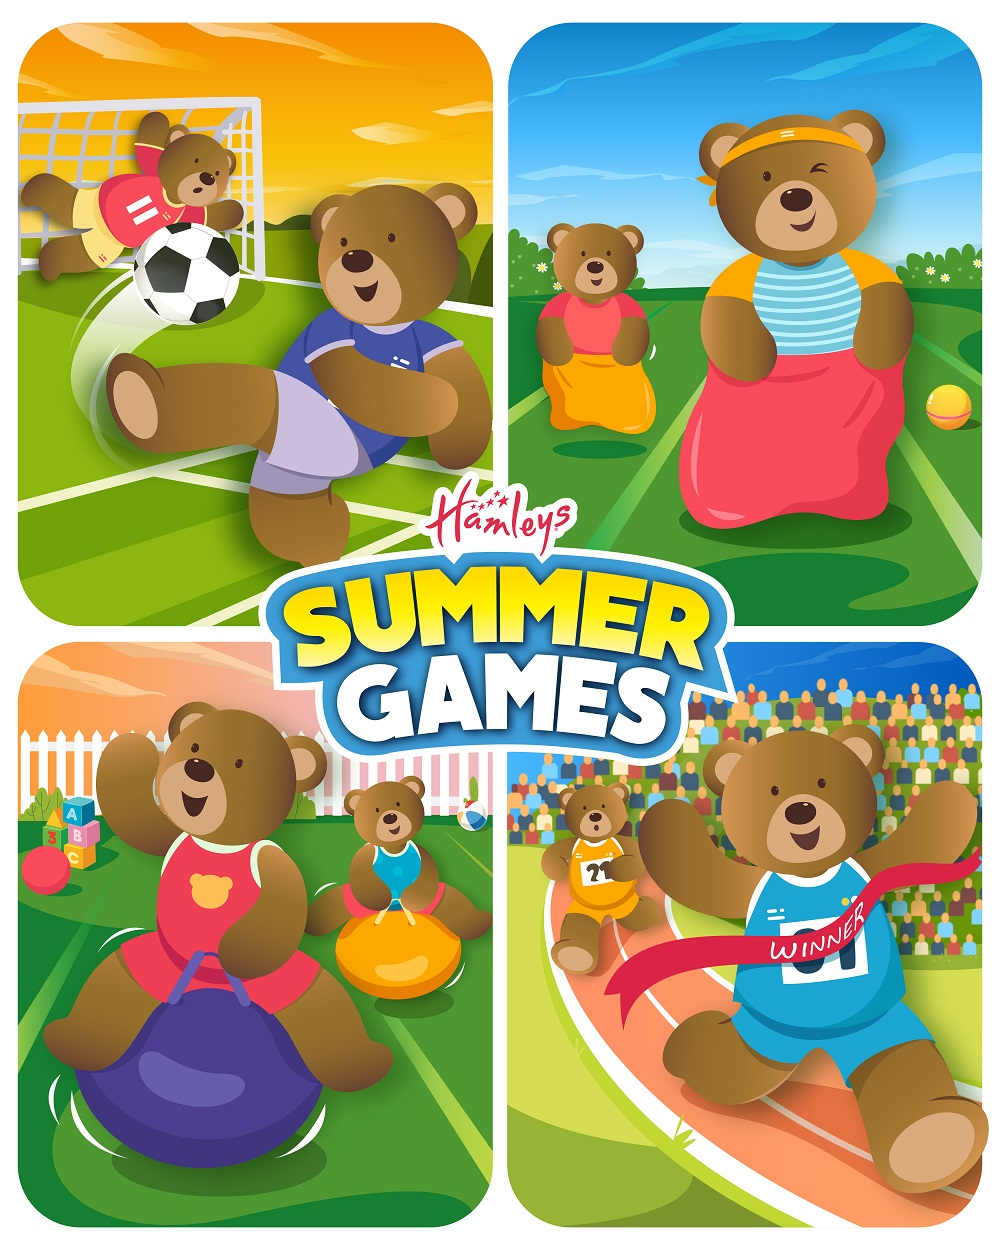 an illustration of teddy bears playing different sports and the text 'Hamley's Summer Games'.